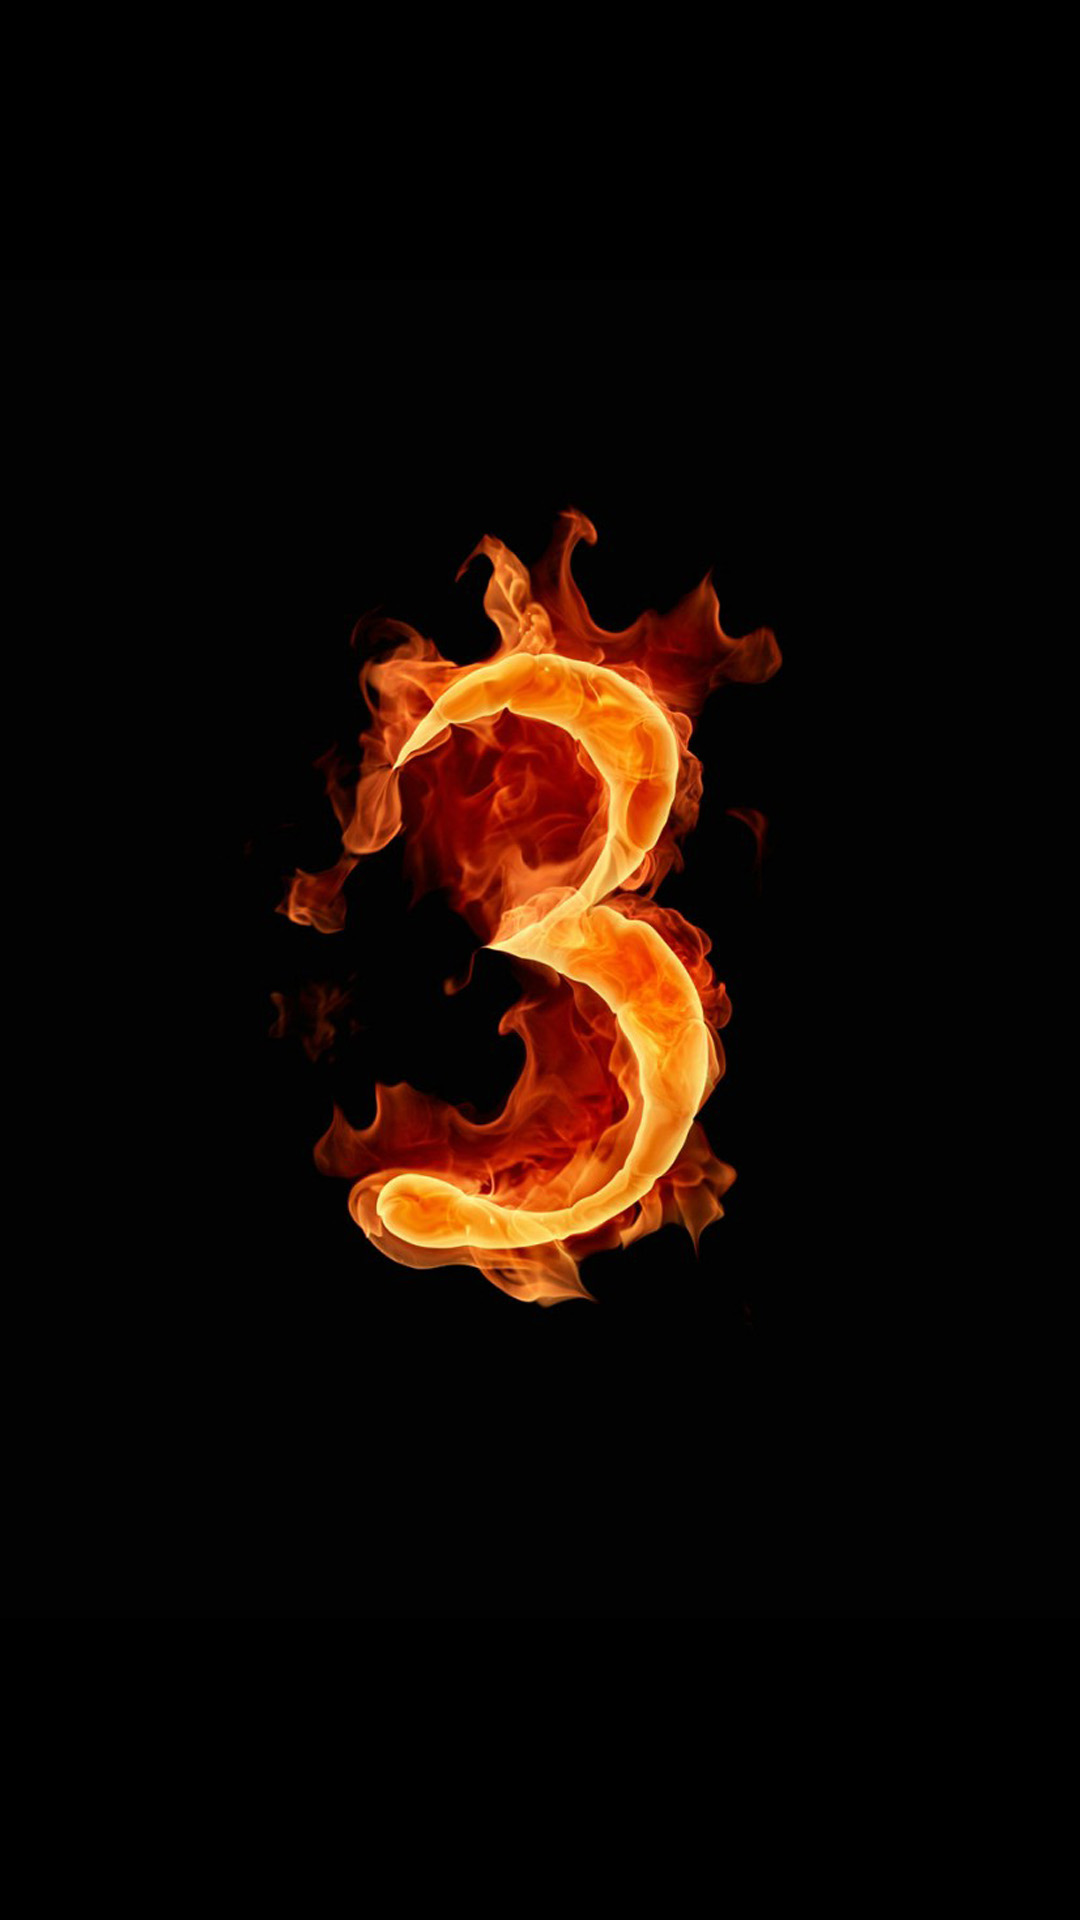 Fire number 3 Galaxy Note 3 Wallpapers iPhone7 1080x1920